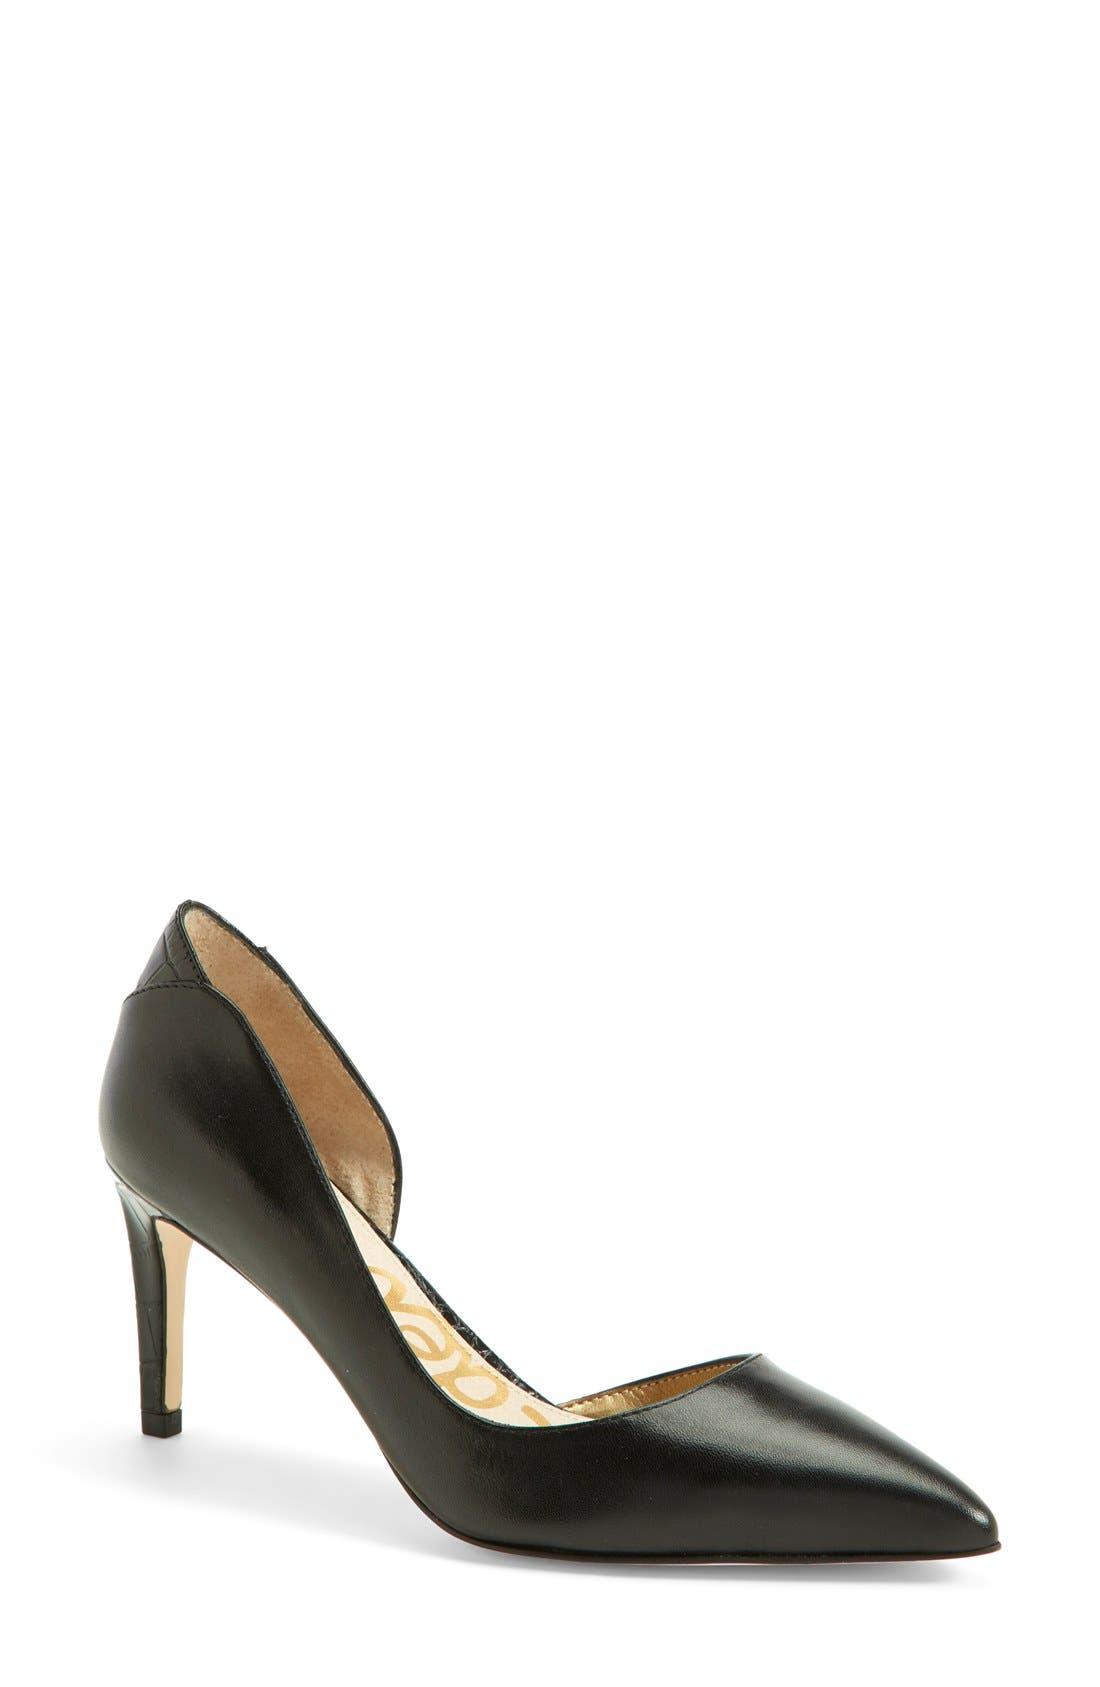 'Onyx' Half d'Orsay Pointy Toe Pump,                             Main thumbnail 1, color,                             001